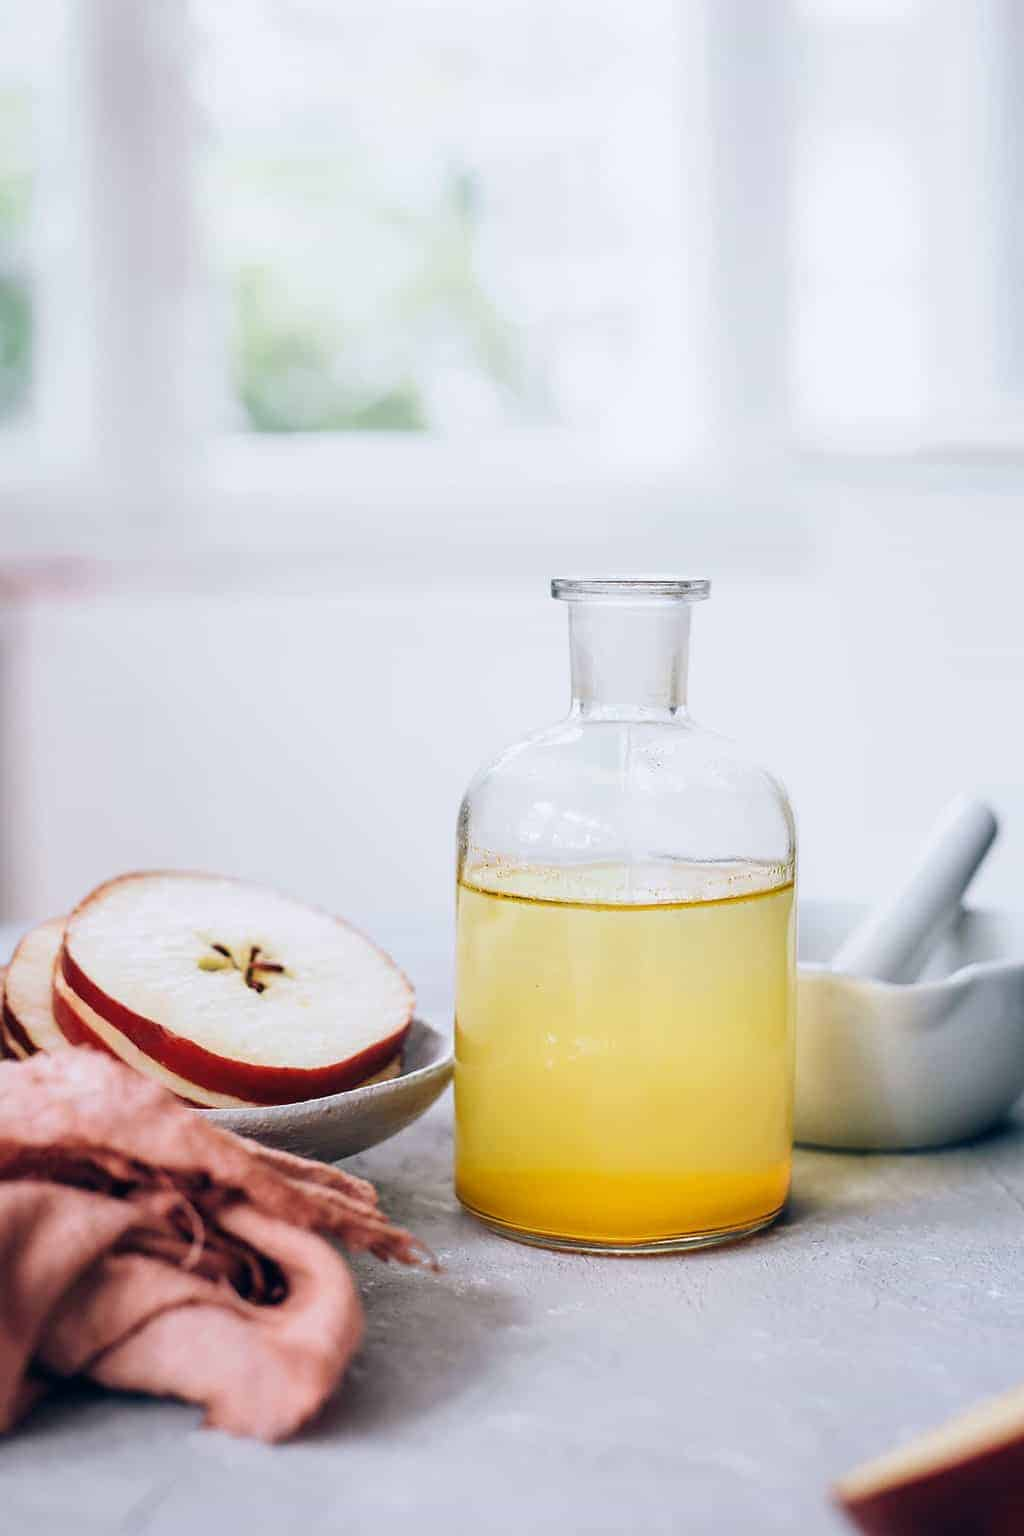 15 Kitchen Beauty Ingredients - Apple Cider Vinegar | HelloGlow.co